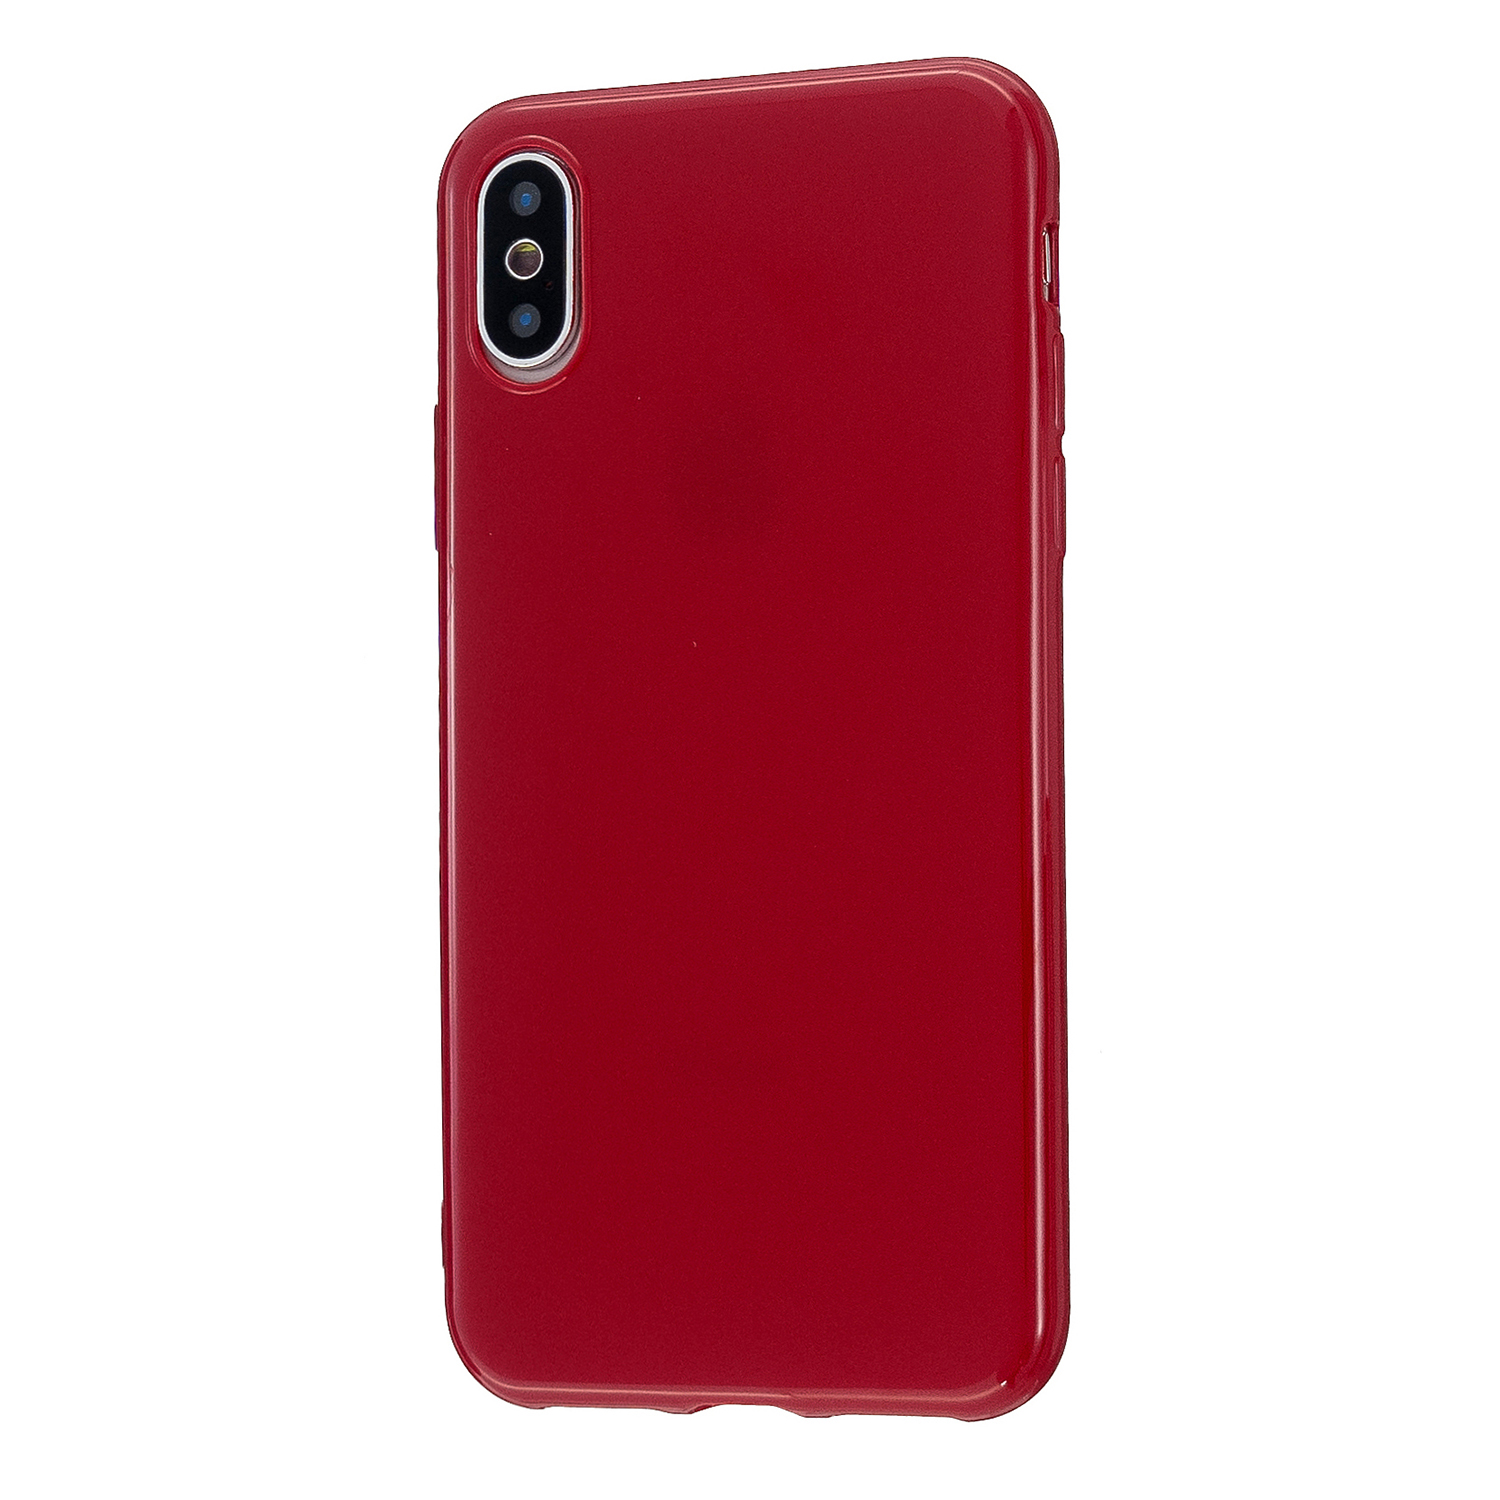 For iPhone X/XS/XS Max/XR  Cellphone Cover Slim Fit Bumper Protective Case Glossy TPU Mobile Phone Shell Rose red